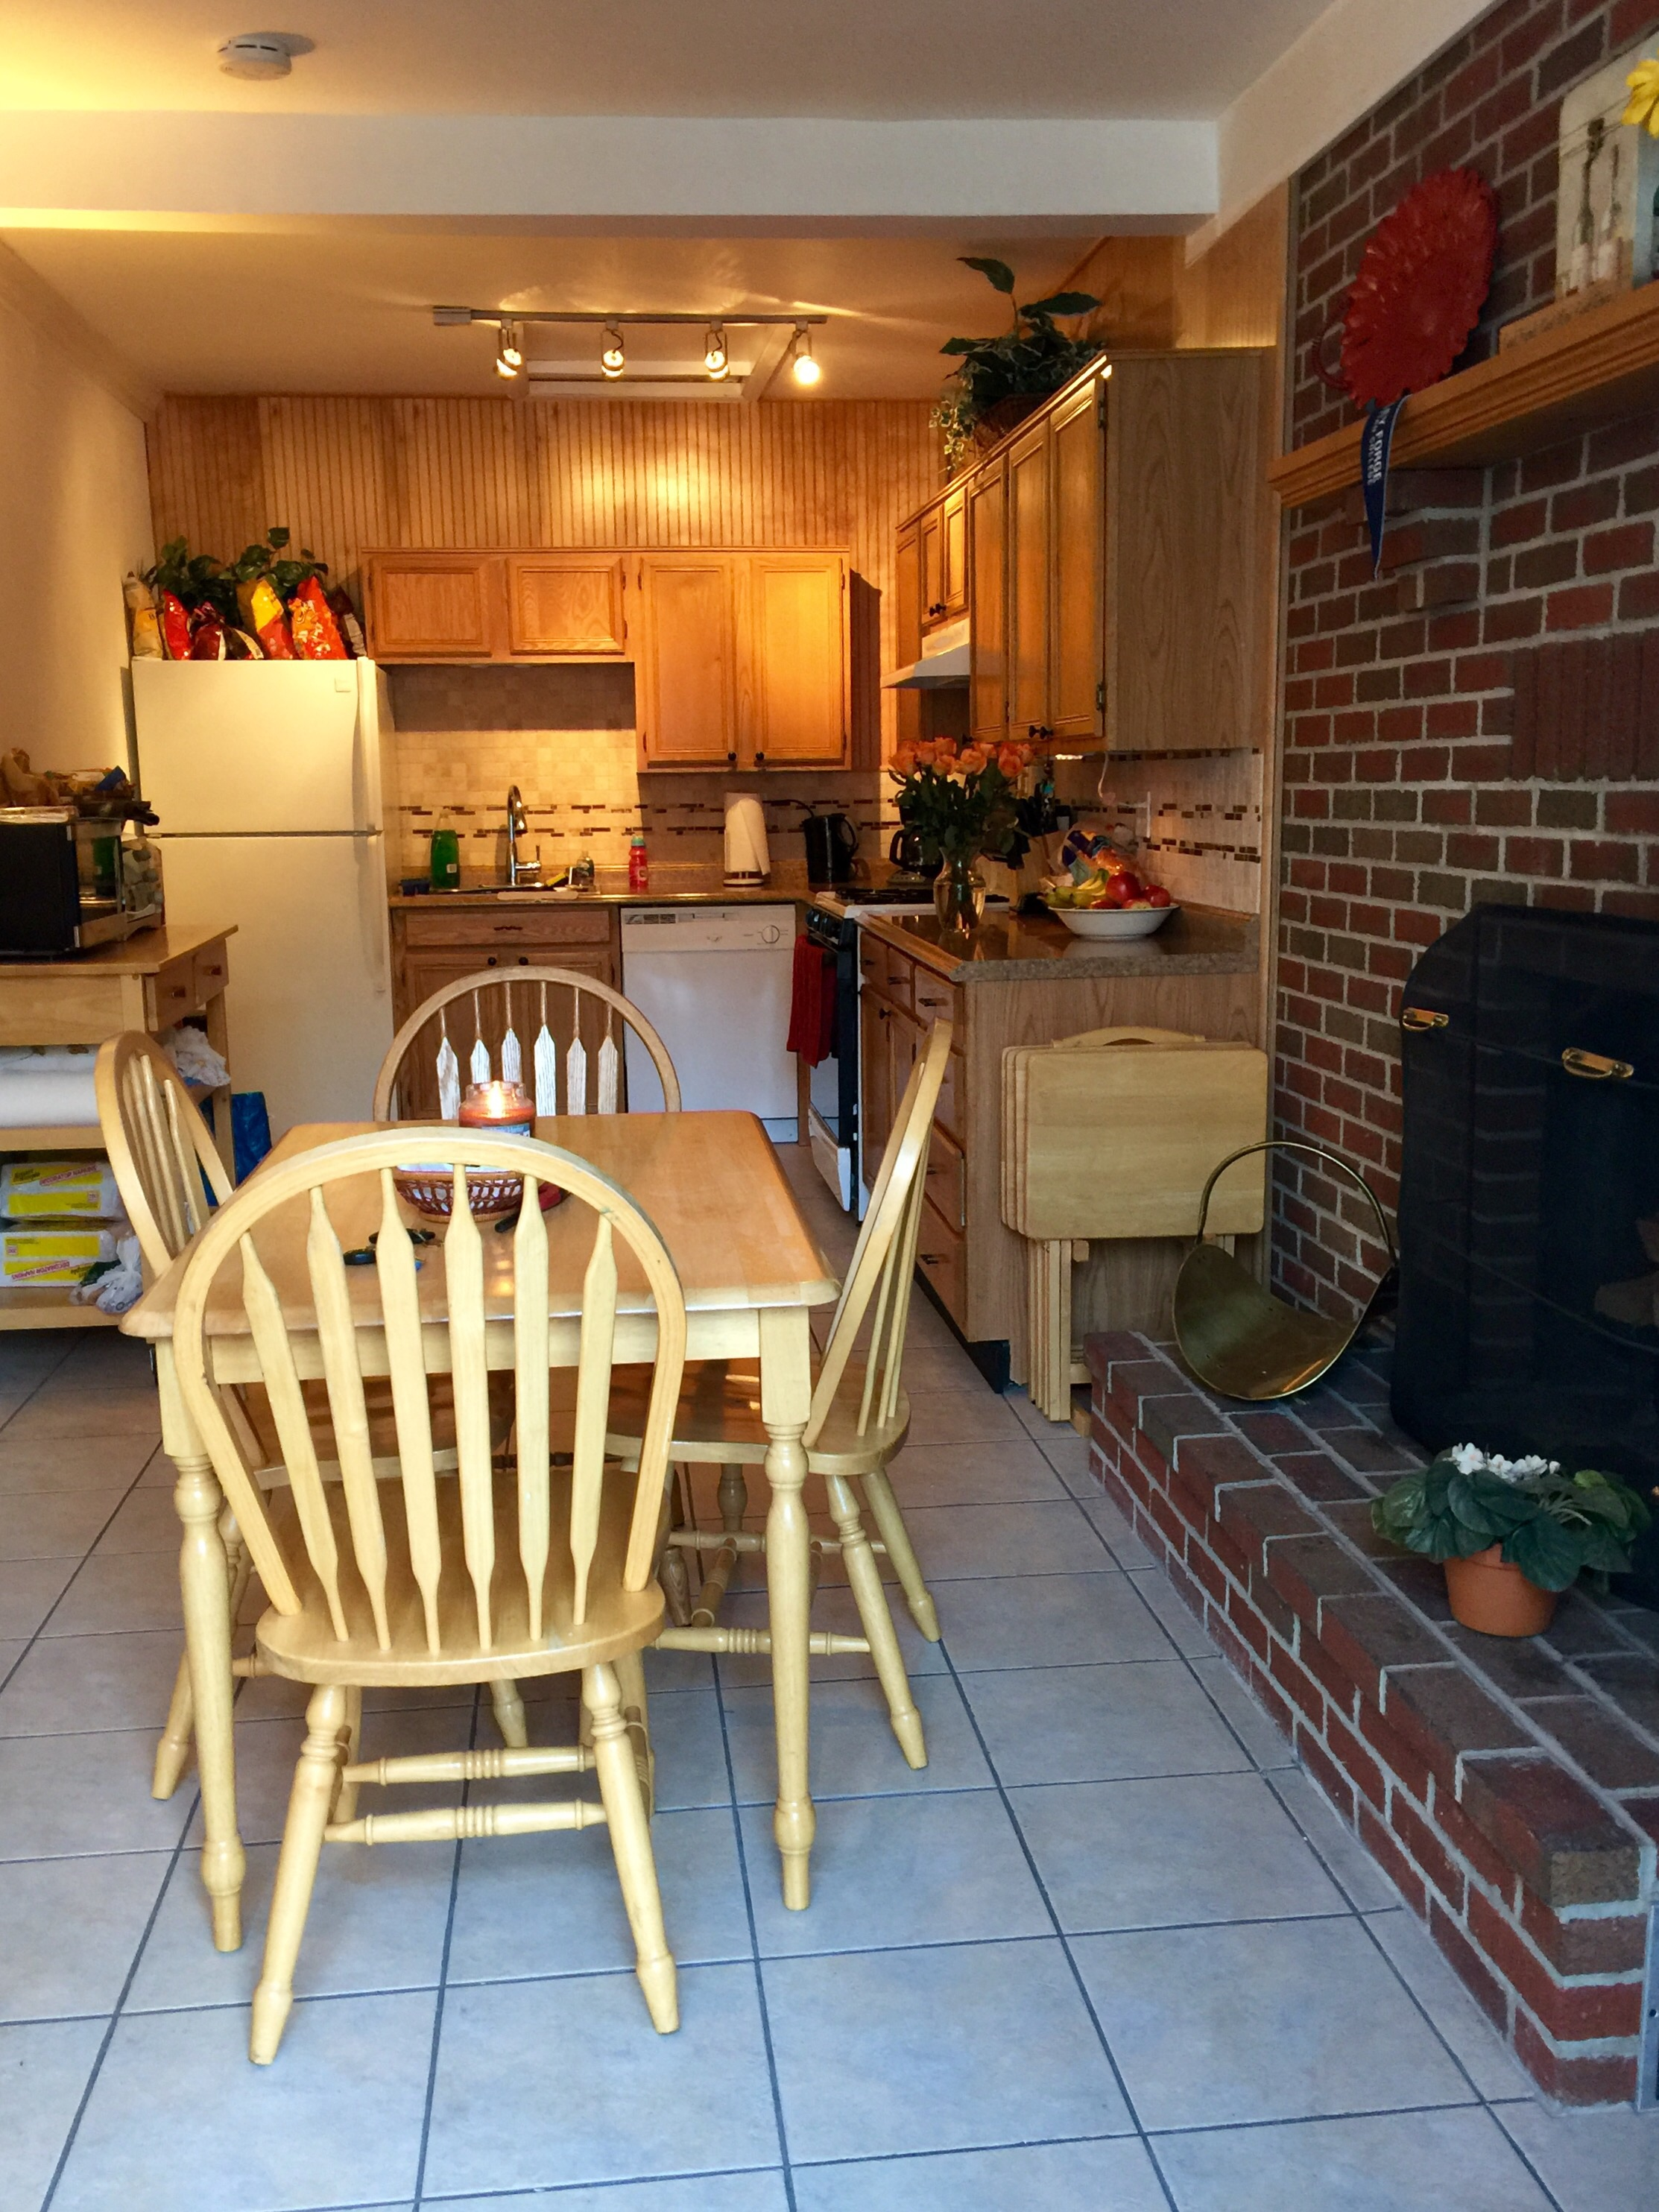 Our kitchen and dining space.